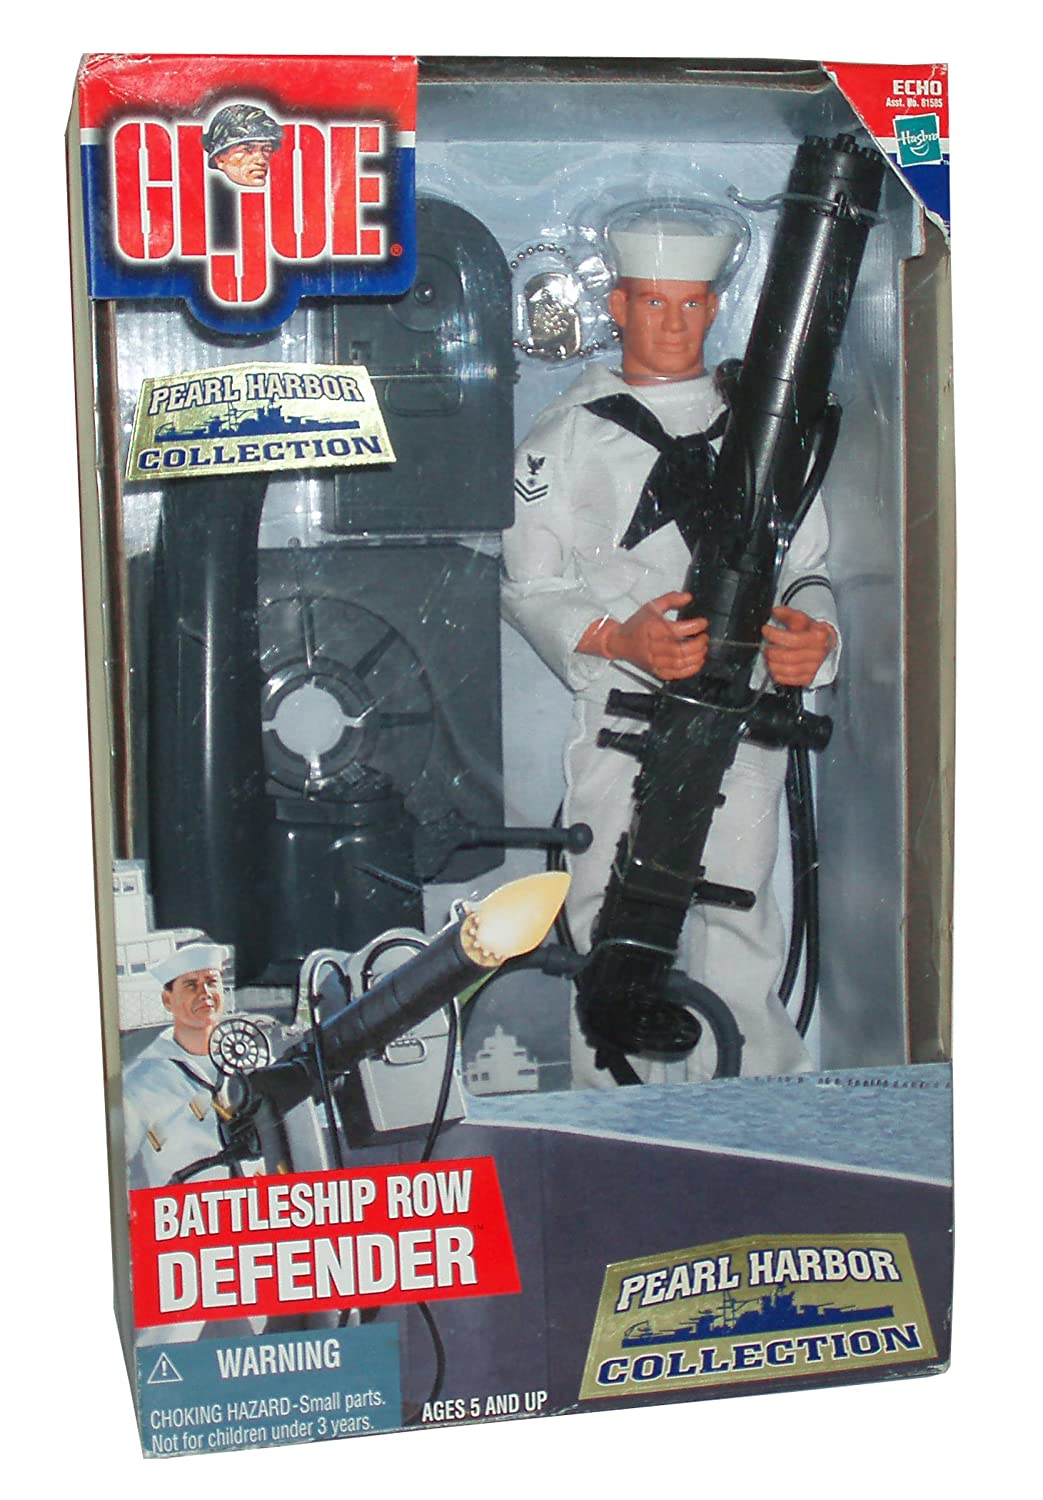 Sailor Uniform with Trousers Dress Shoes and Dog Tags Hat GI Joe Year 2000 Echo Pearl Harbor Collection Series 12 Inch Tall Soldier Action Figure BATTLESHIP ROW DEFENDER with Sailor Figure .50 Caliber Water-Cooled Machine Gun Jumper and Neckerchief